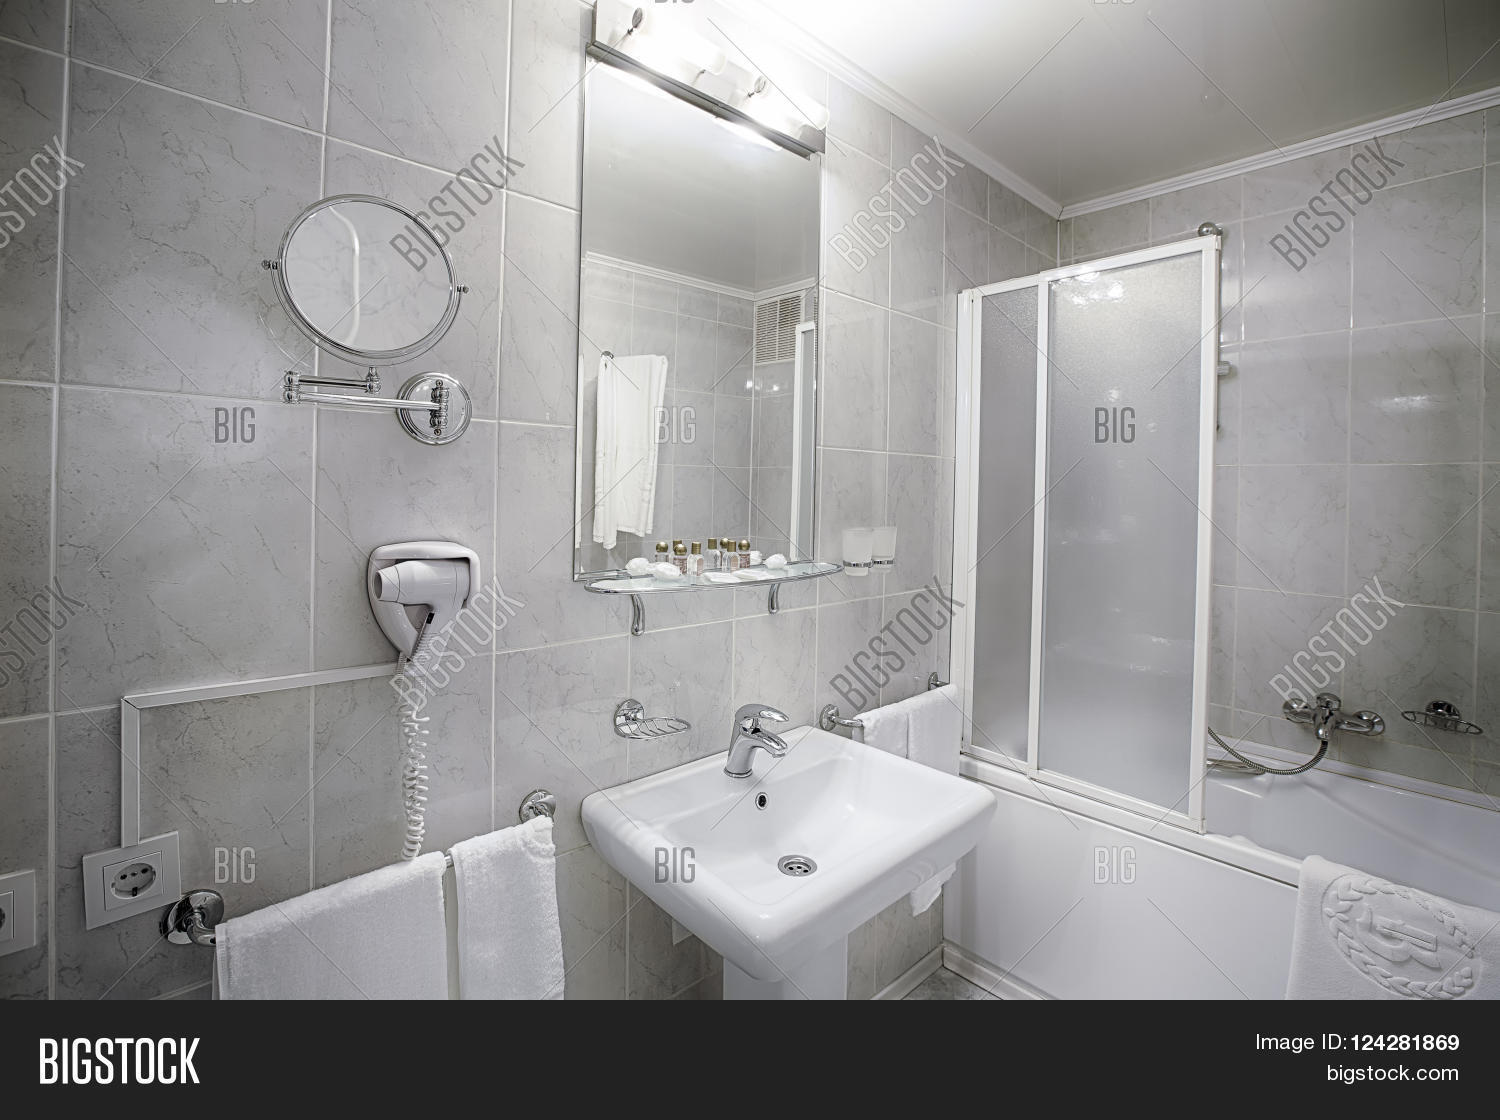 interior design of a hotel bathroom. hotel restroom interior